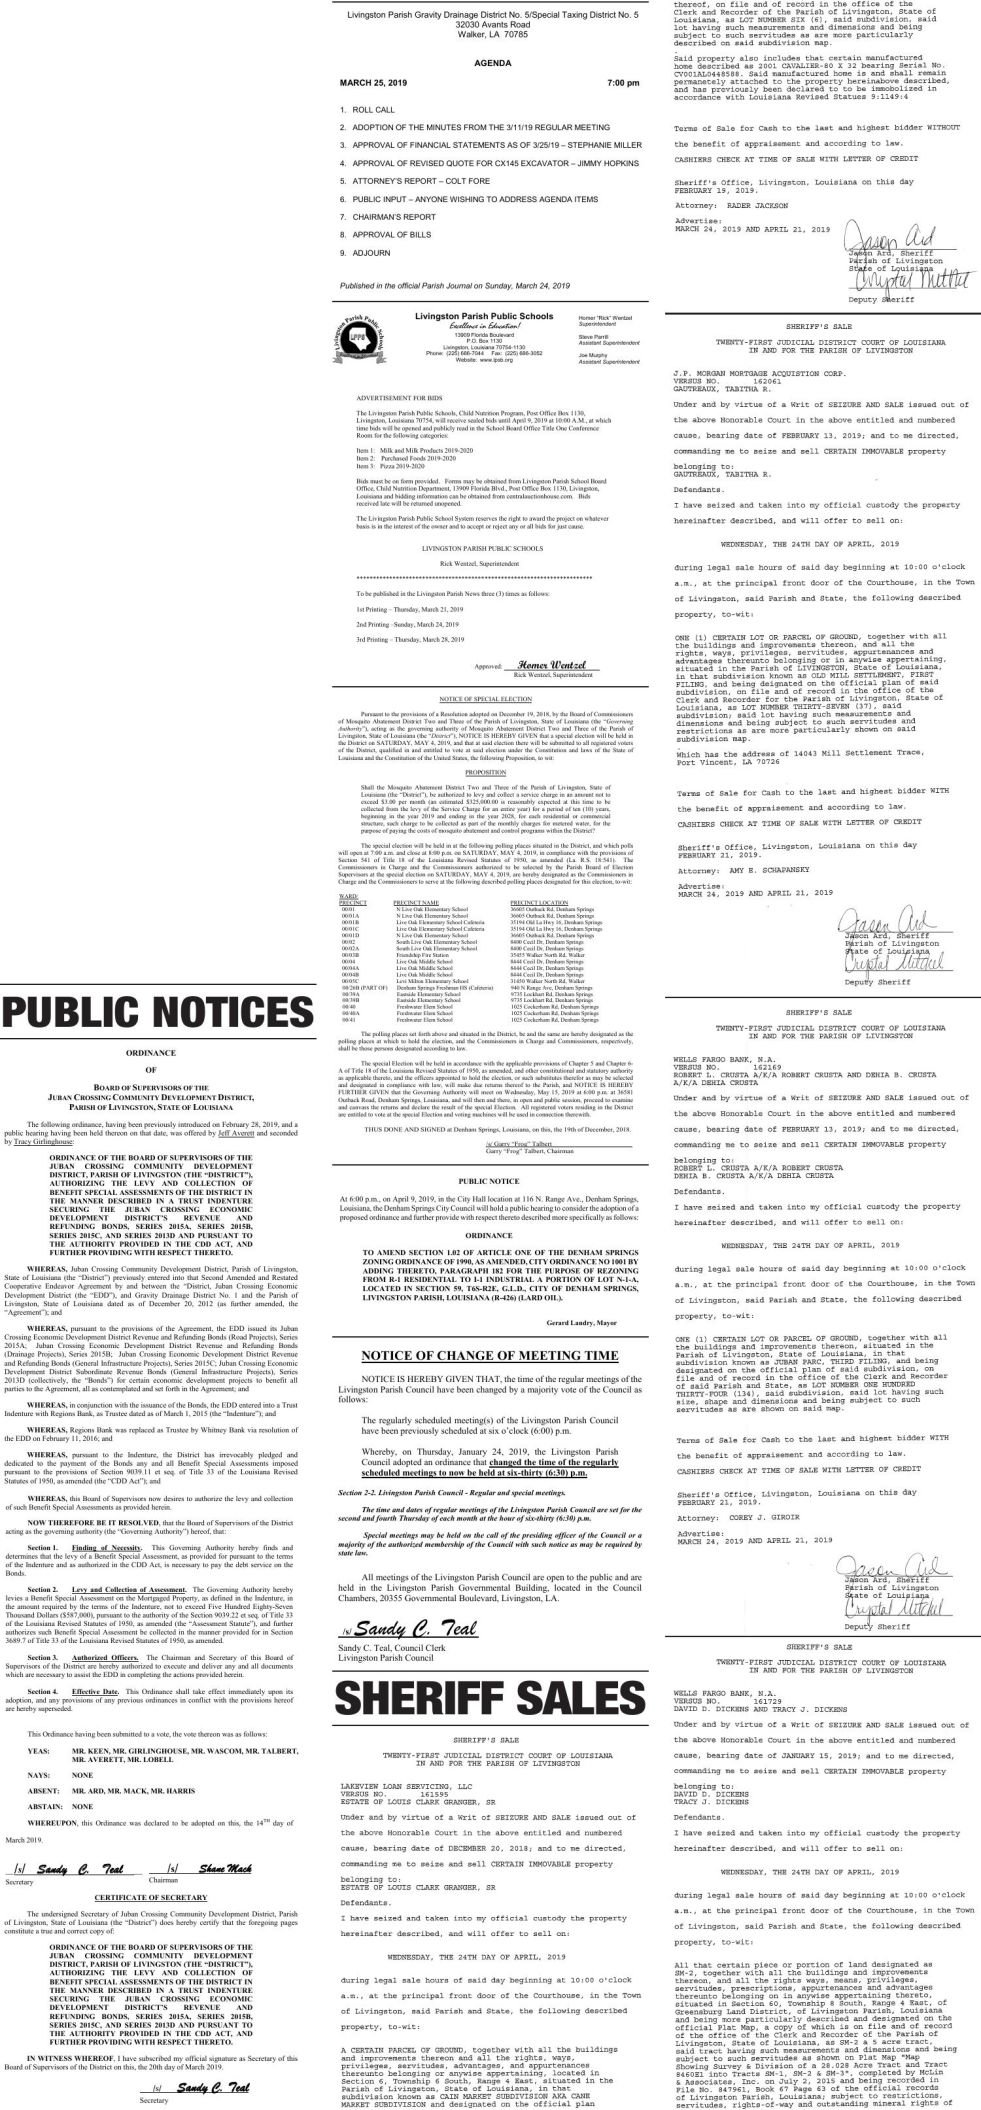 public notices published march 24  2019